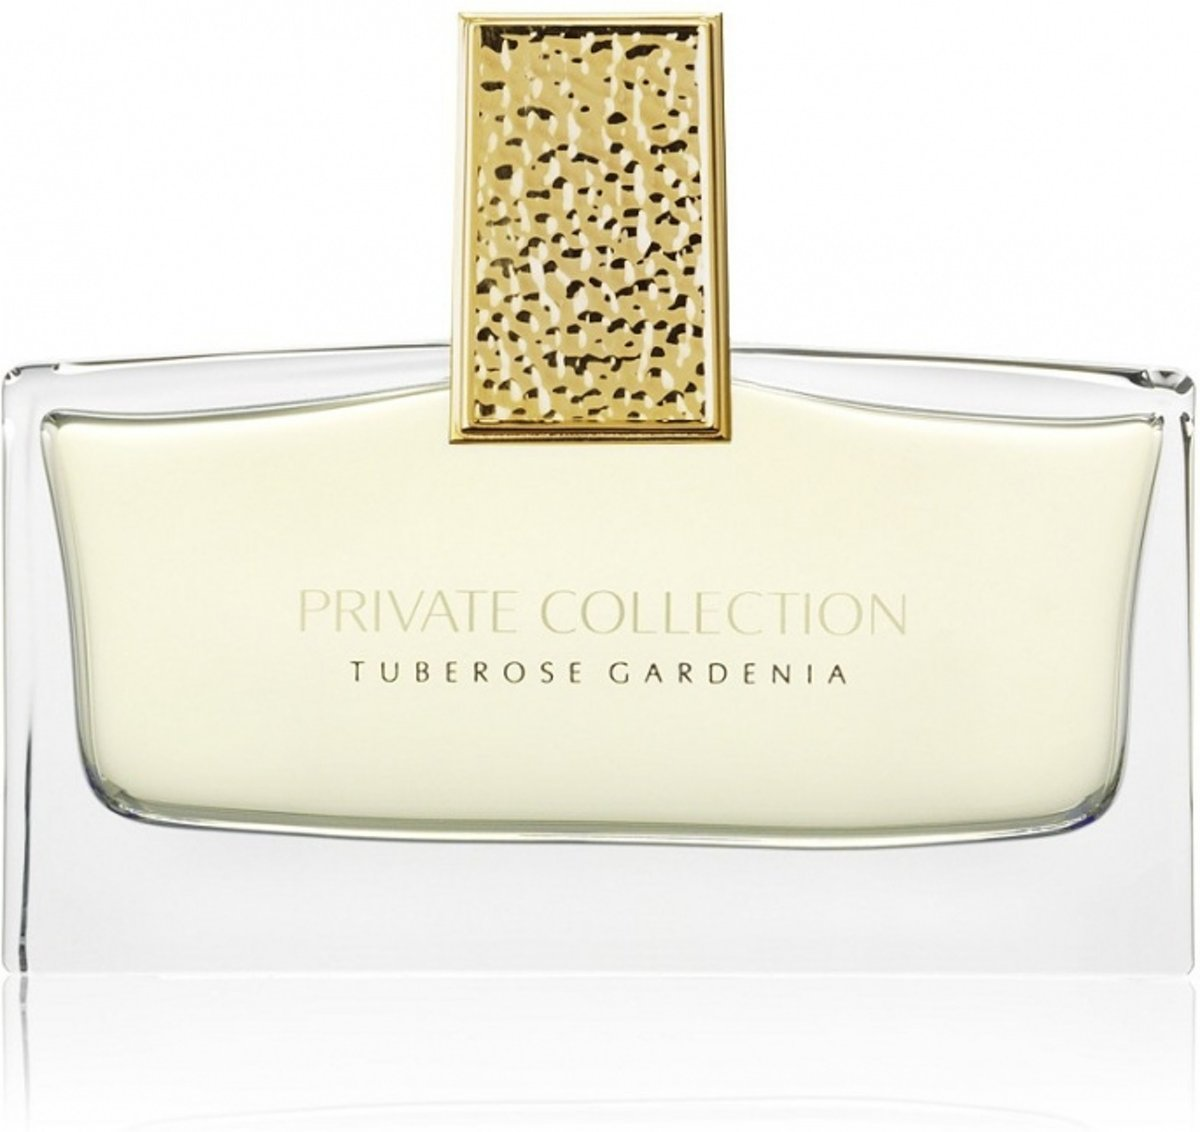 Estée Lauder Private Collection Tuberose Gardenia Eau de Parfum Spray 75 ml